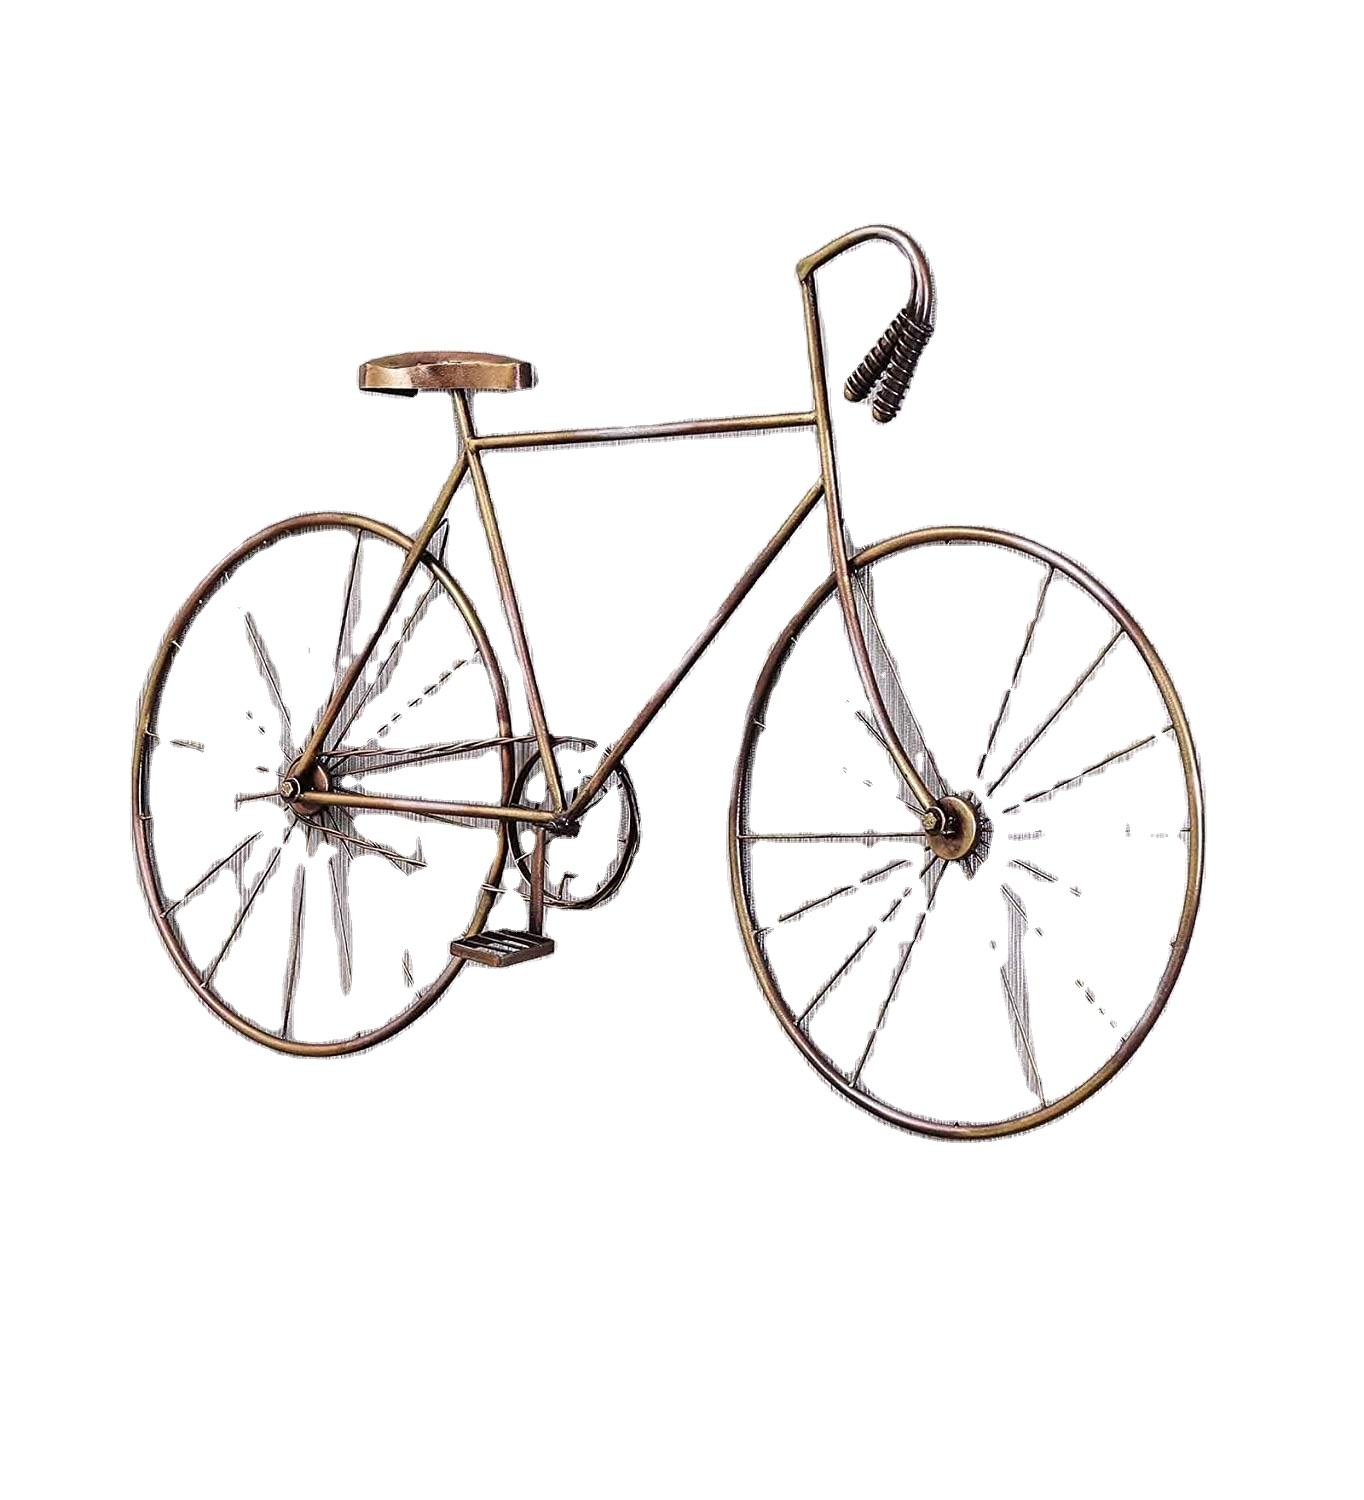 Quick Lead Lowest Price wall bicycle for Wall Deecor Home and Restaurant iron metal decorating bicycle